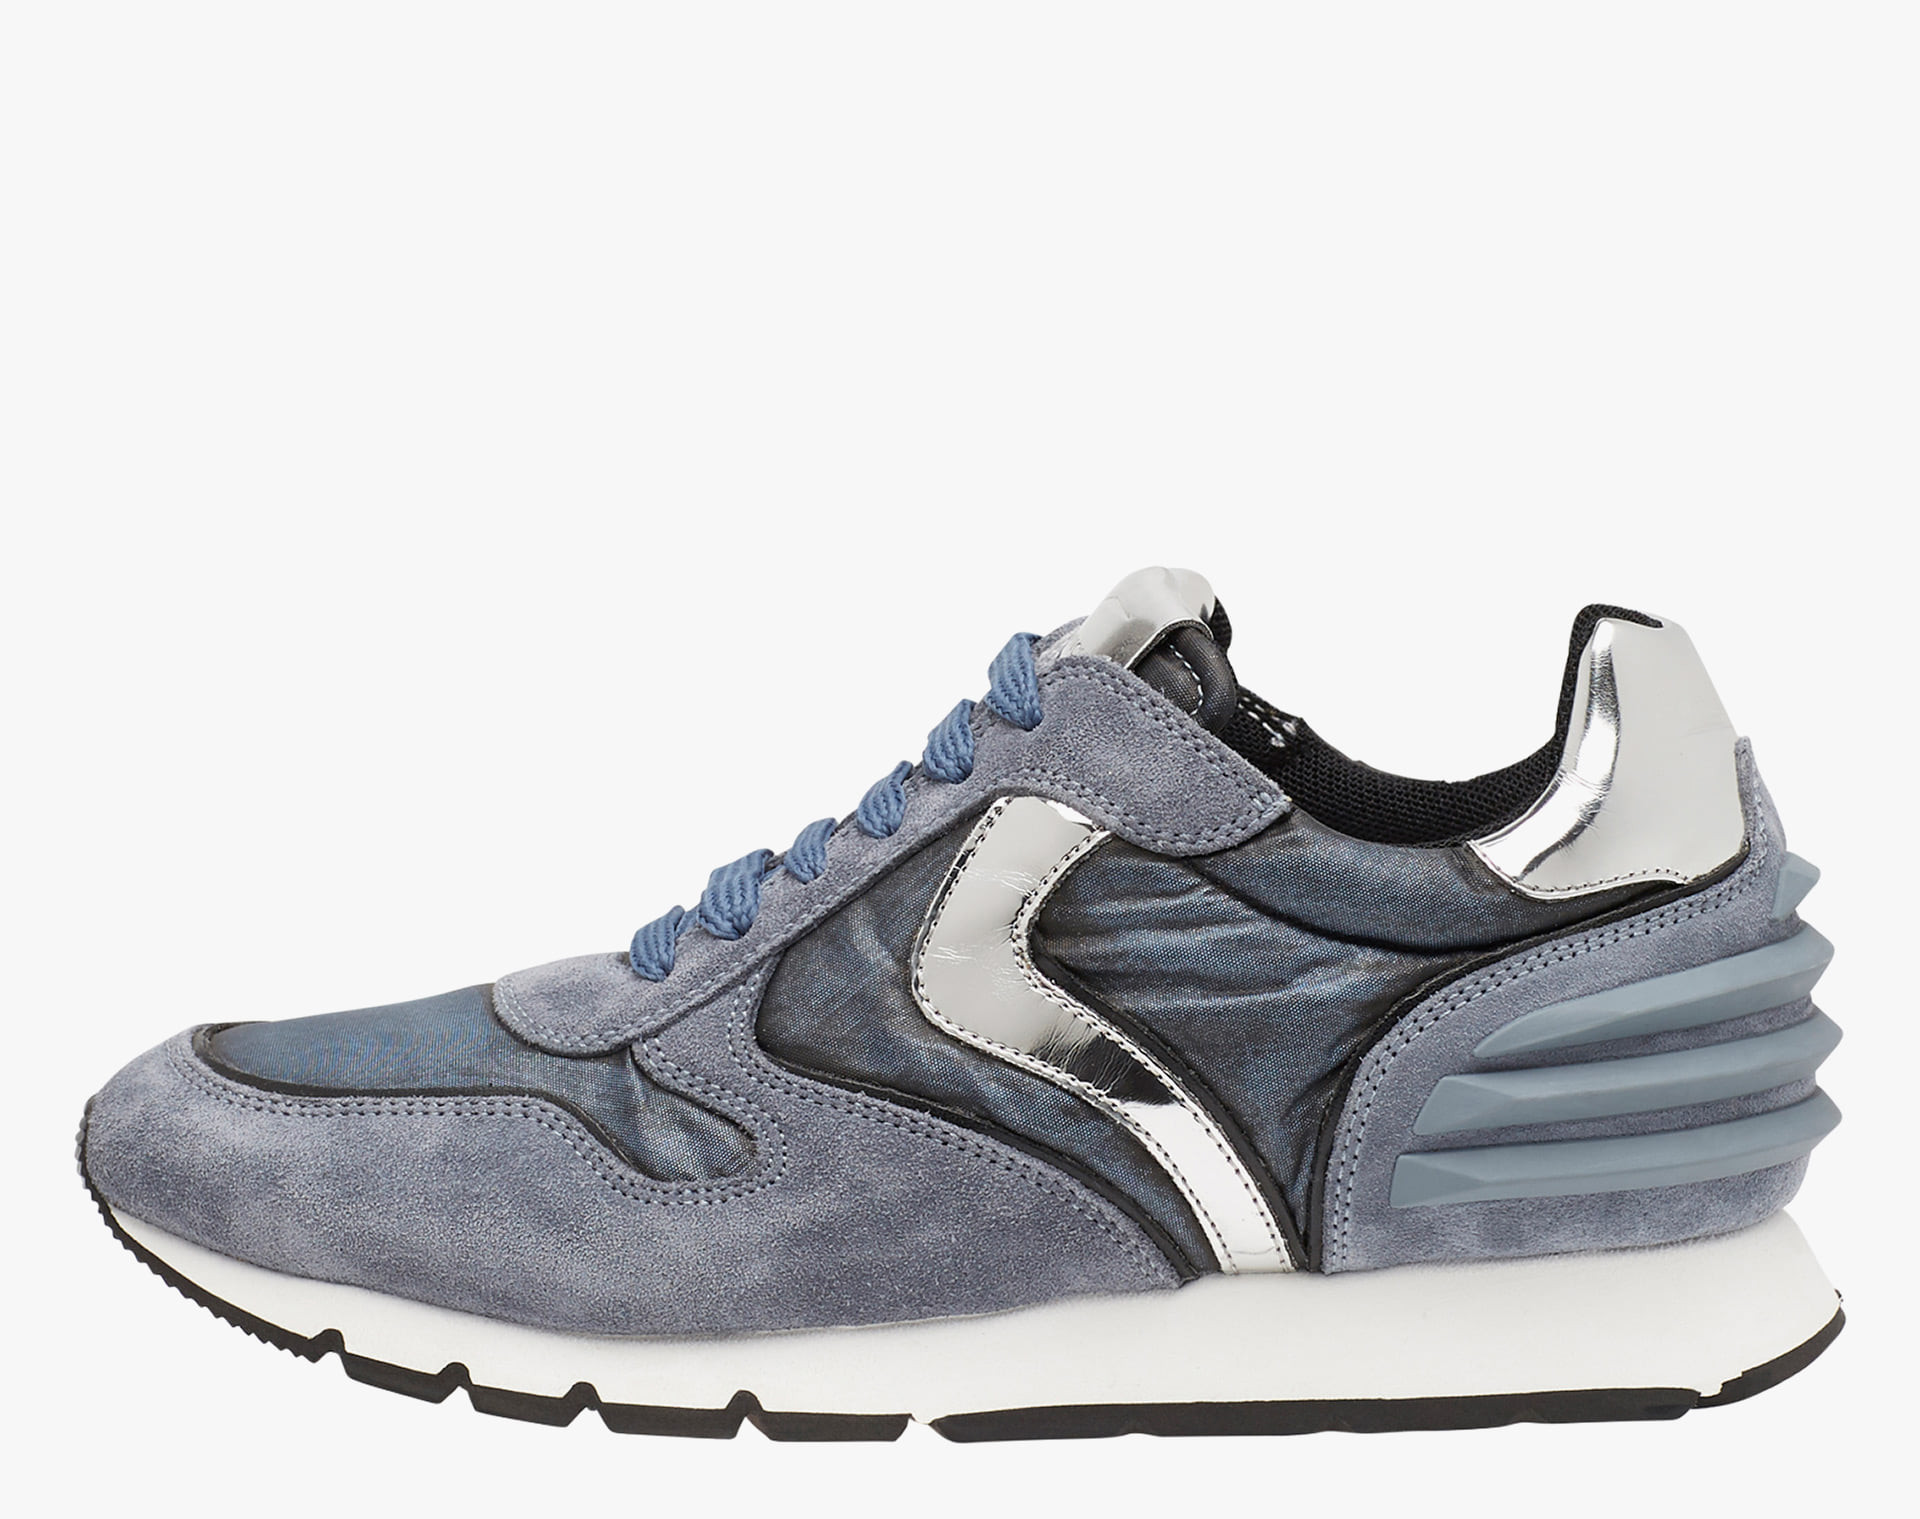 JULIA POWER - Sneakers in leather and nylon - DENIM-BLUE